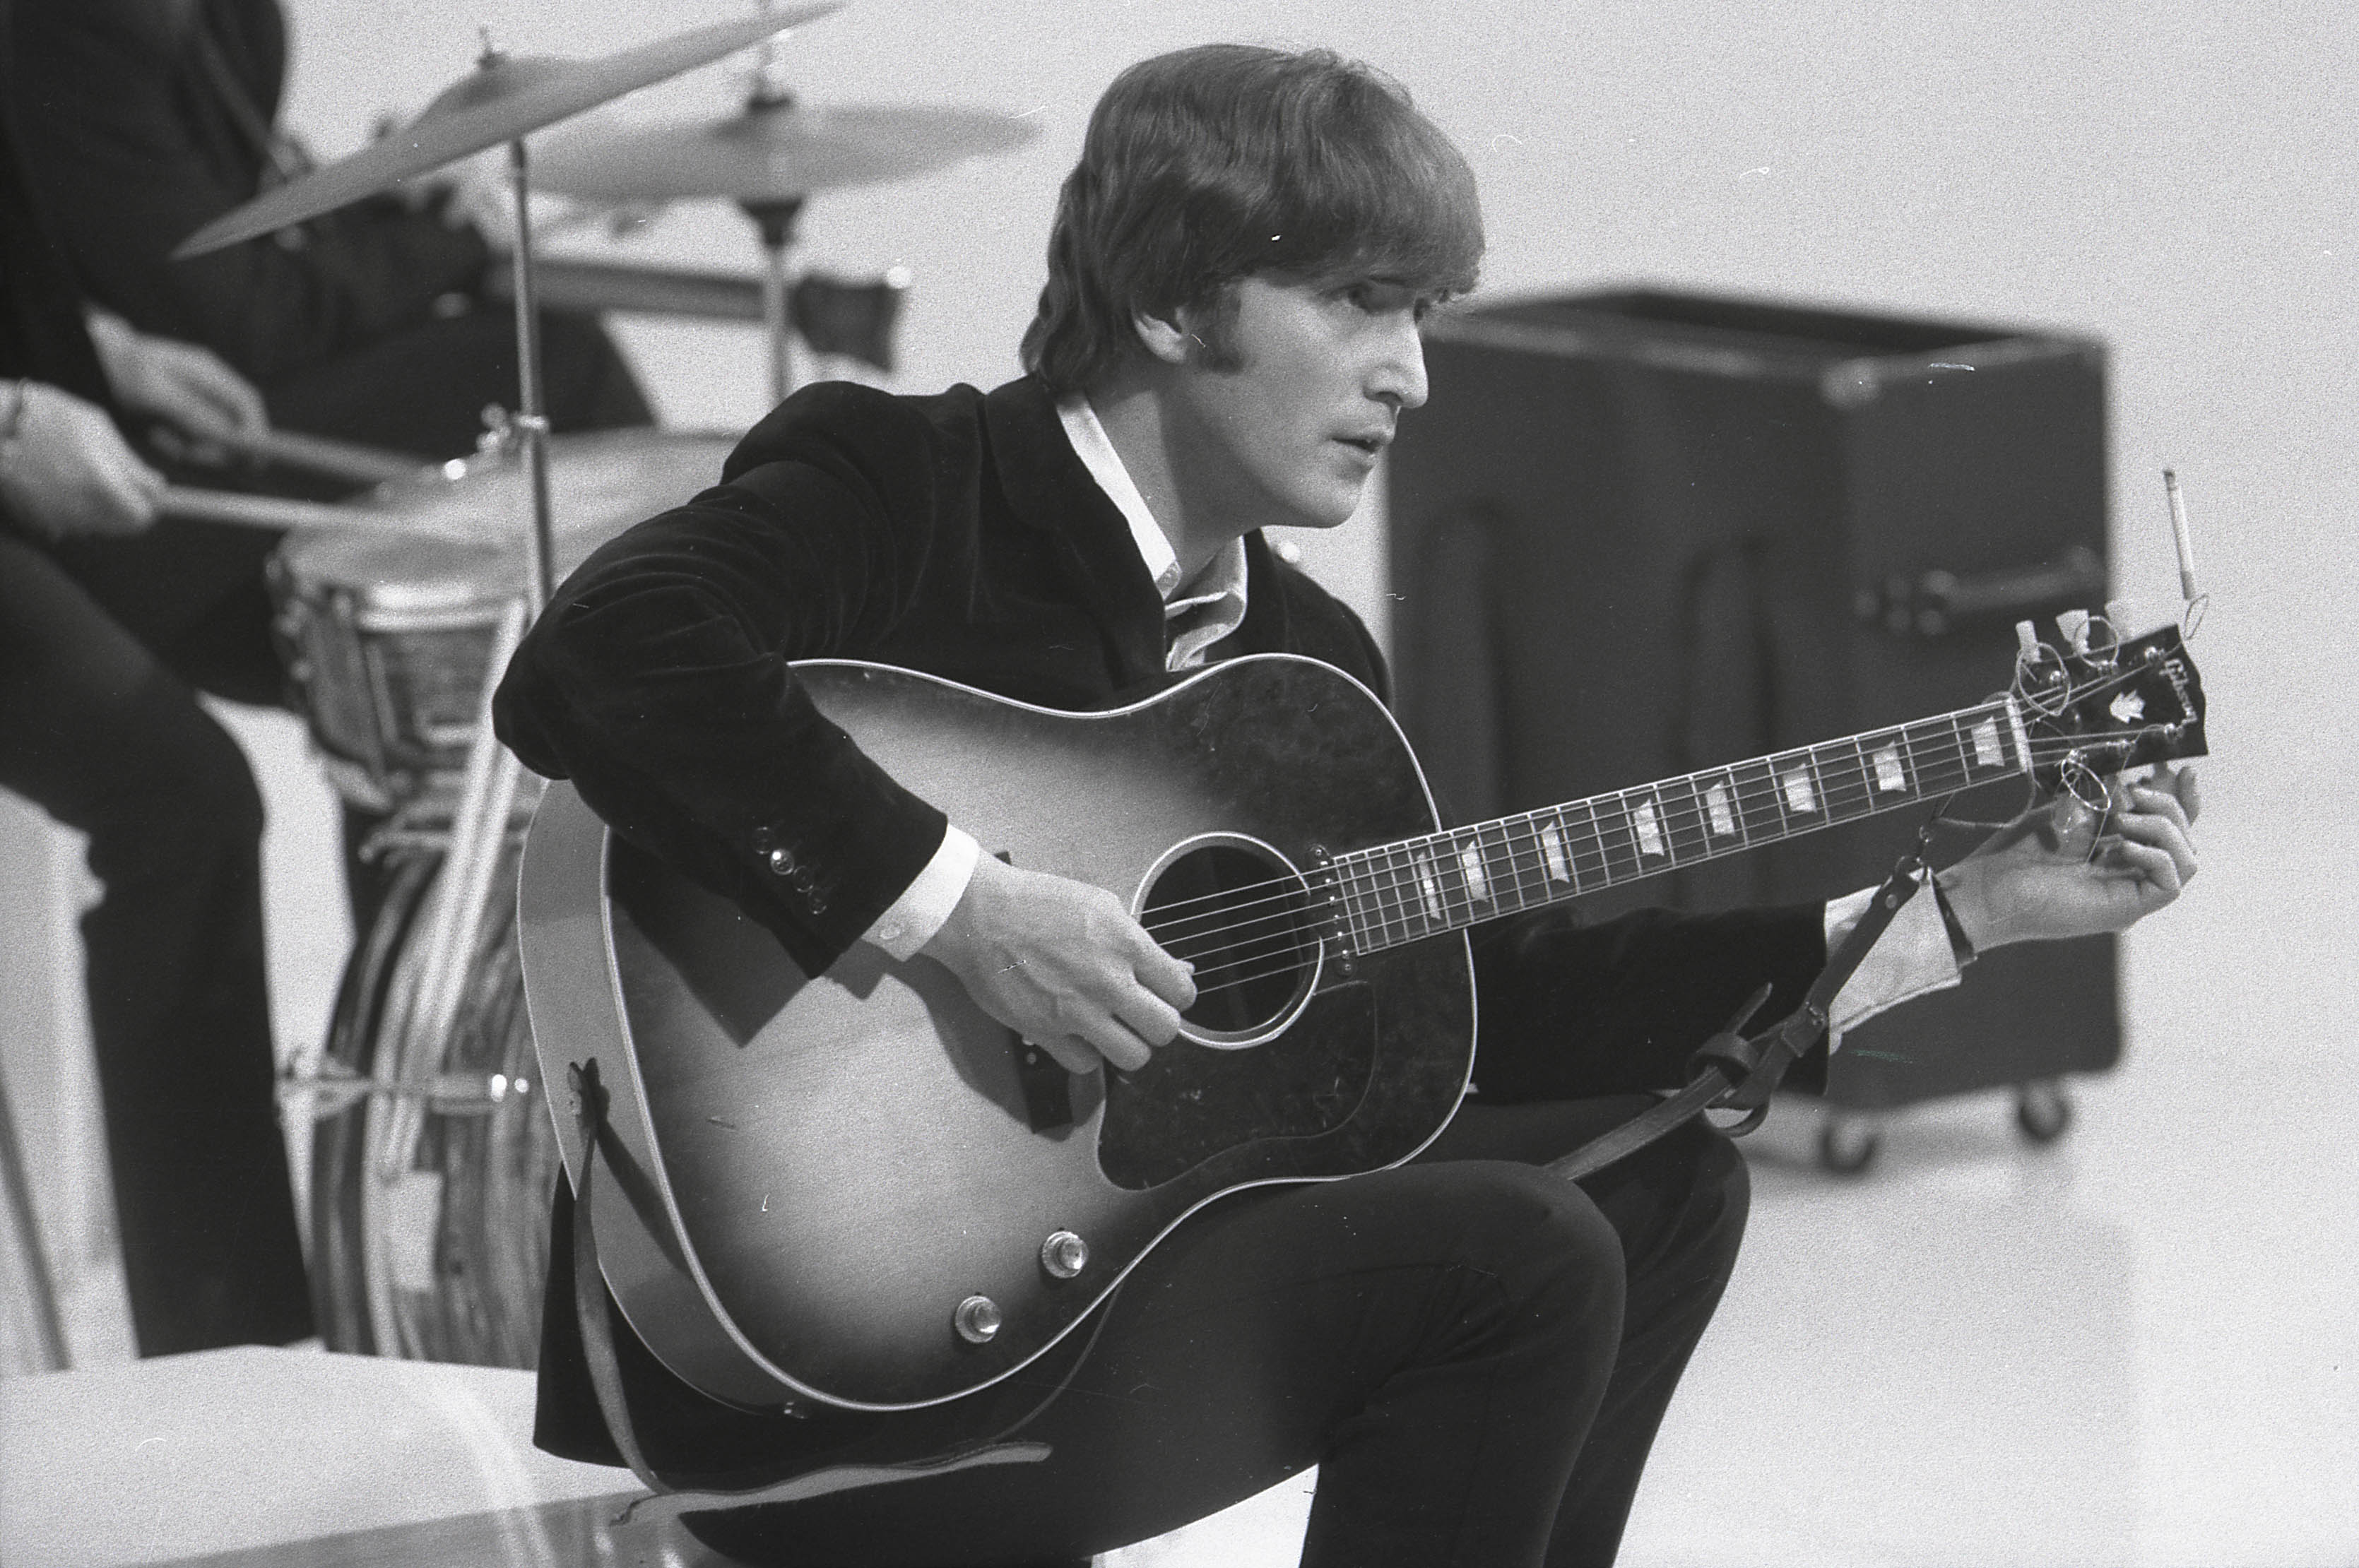 John Lennon Tuning His Replacement Gibson J160E Acoustic Guitar During The Filming Of A Hard Days Night At Scala Theatre In 1964